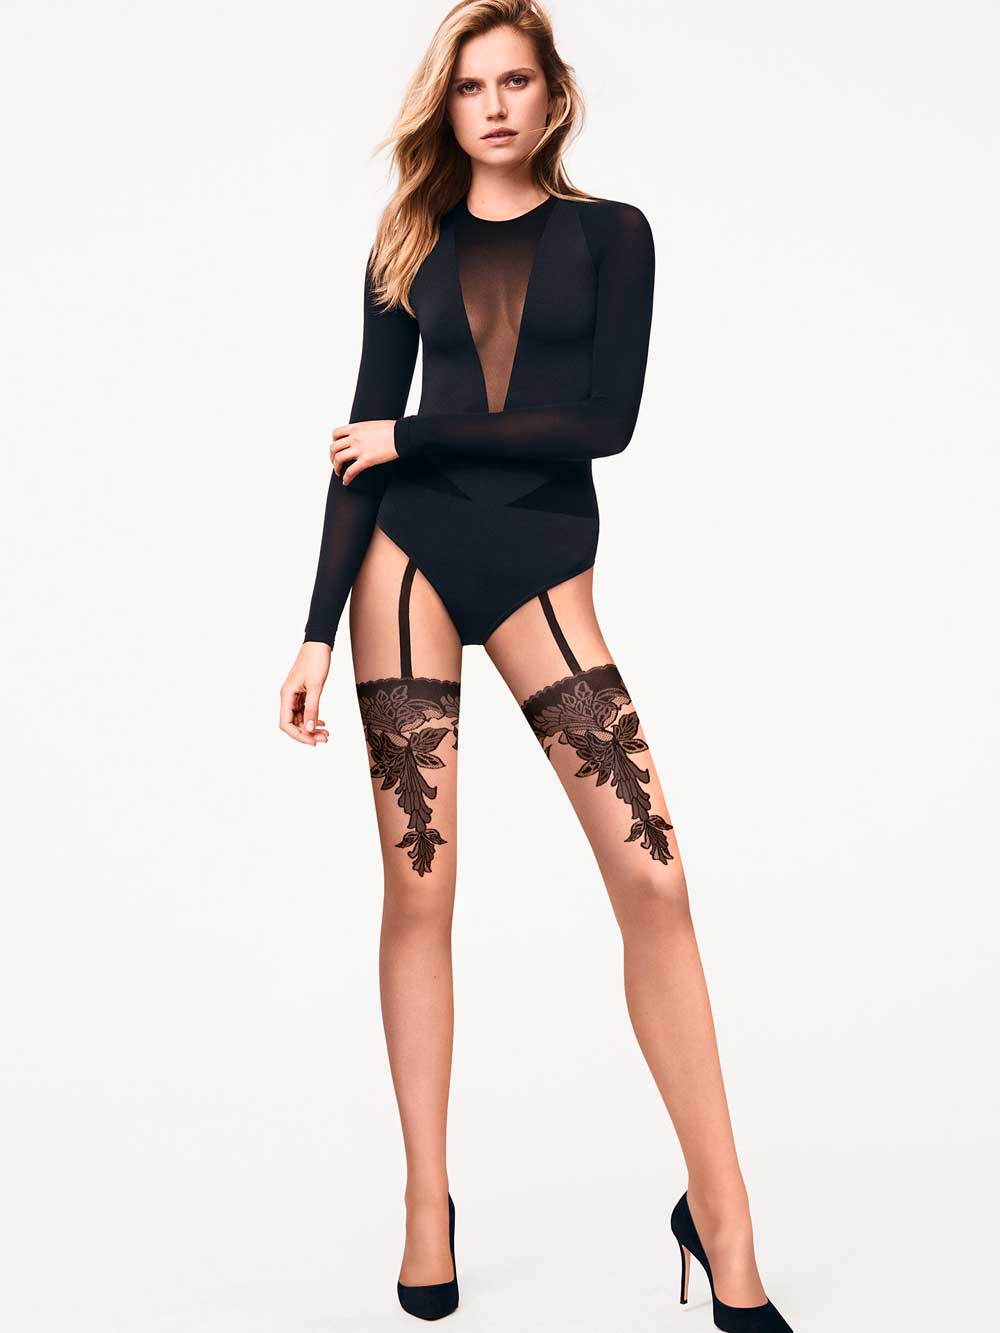 pantyhose with natal designs